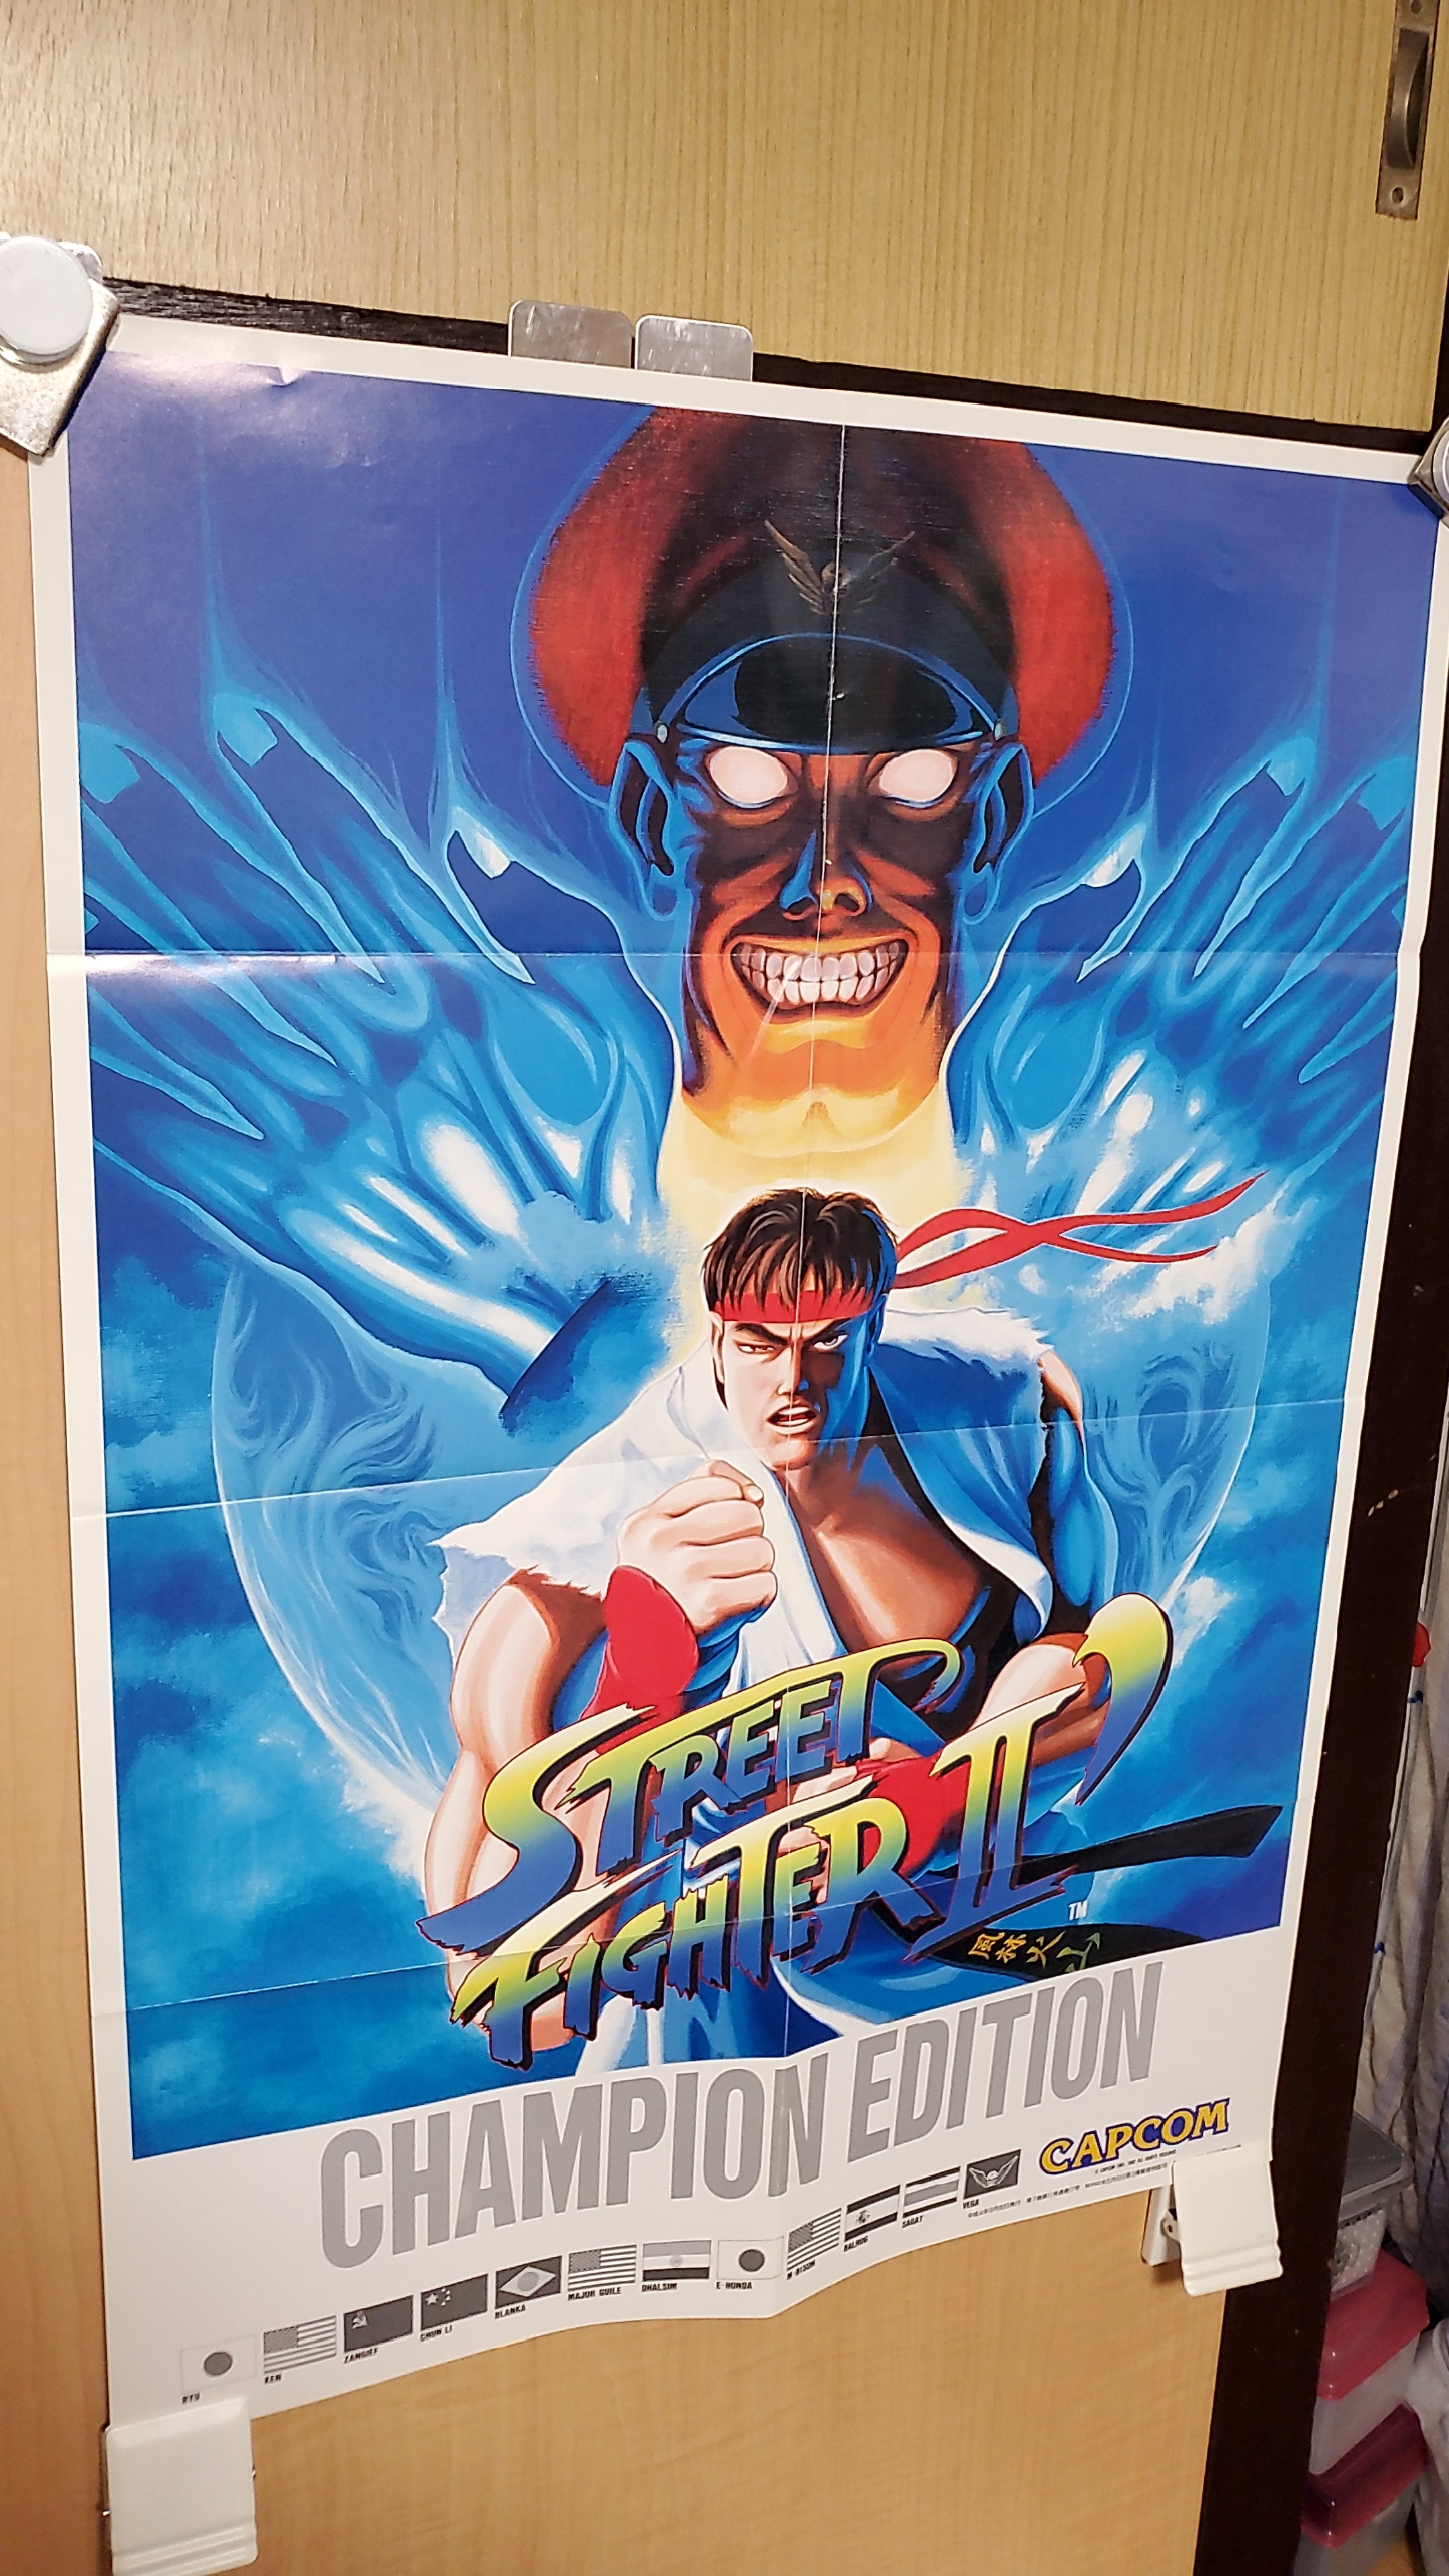 street fighter 2 champion edition poster